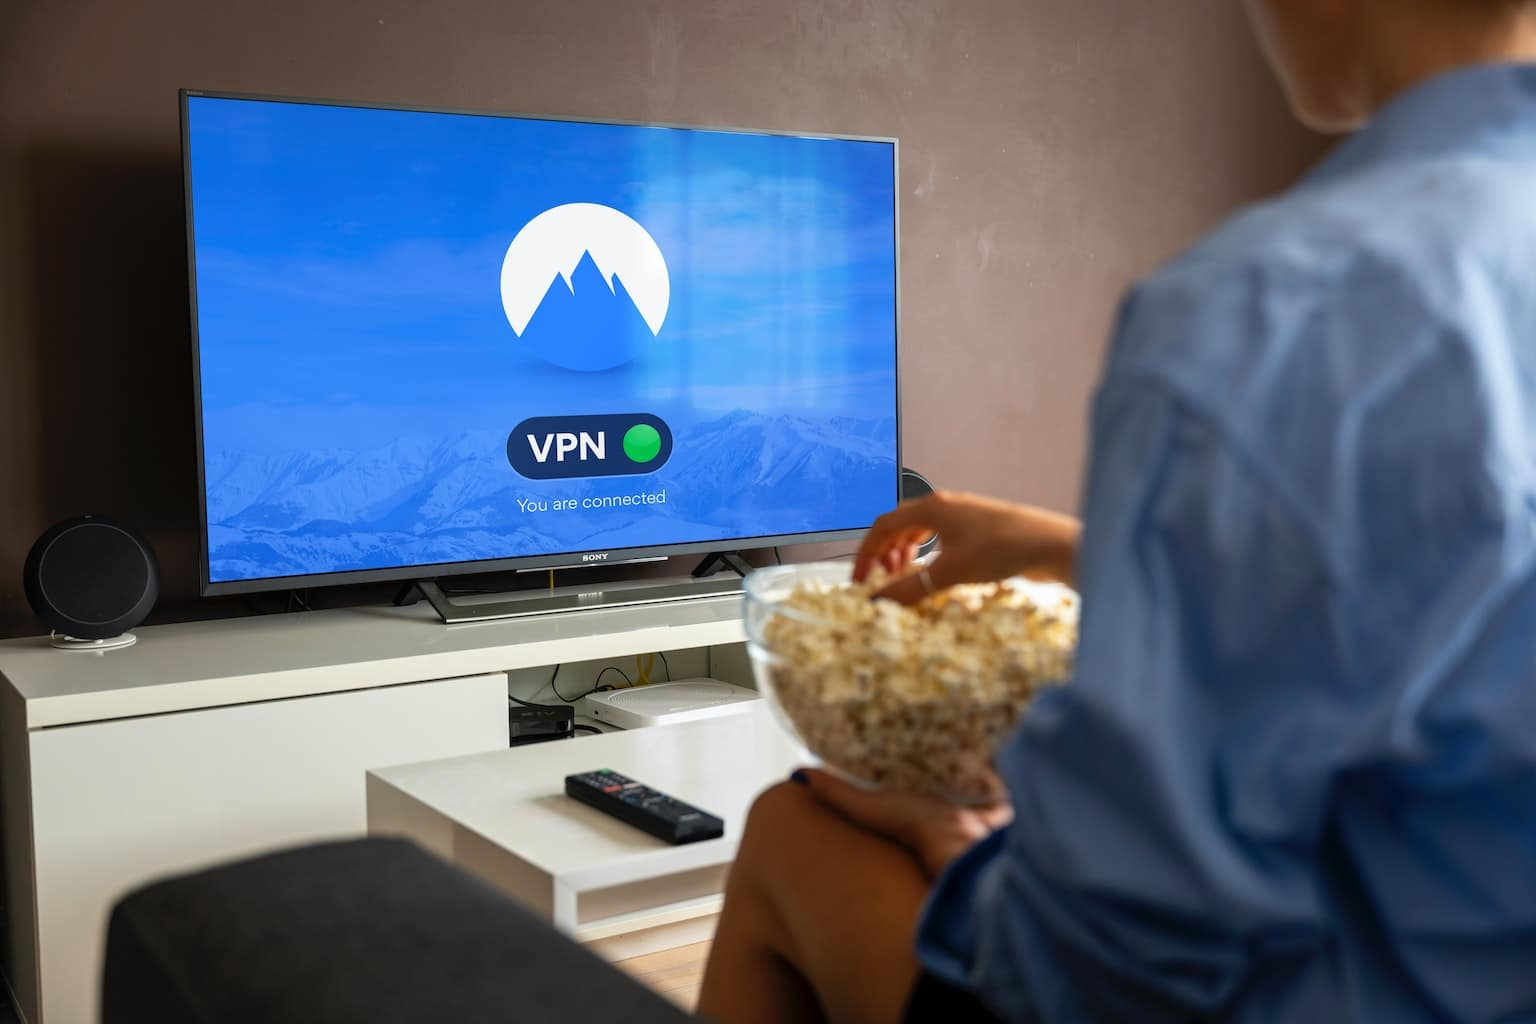 VPN (virtual private network) from NORDVPN 12 months